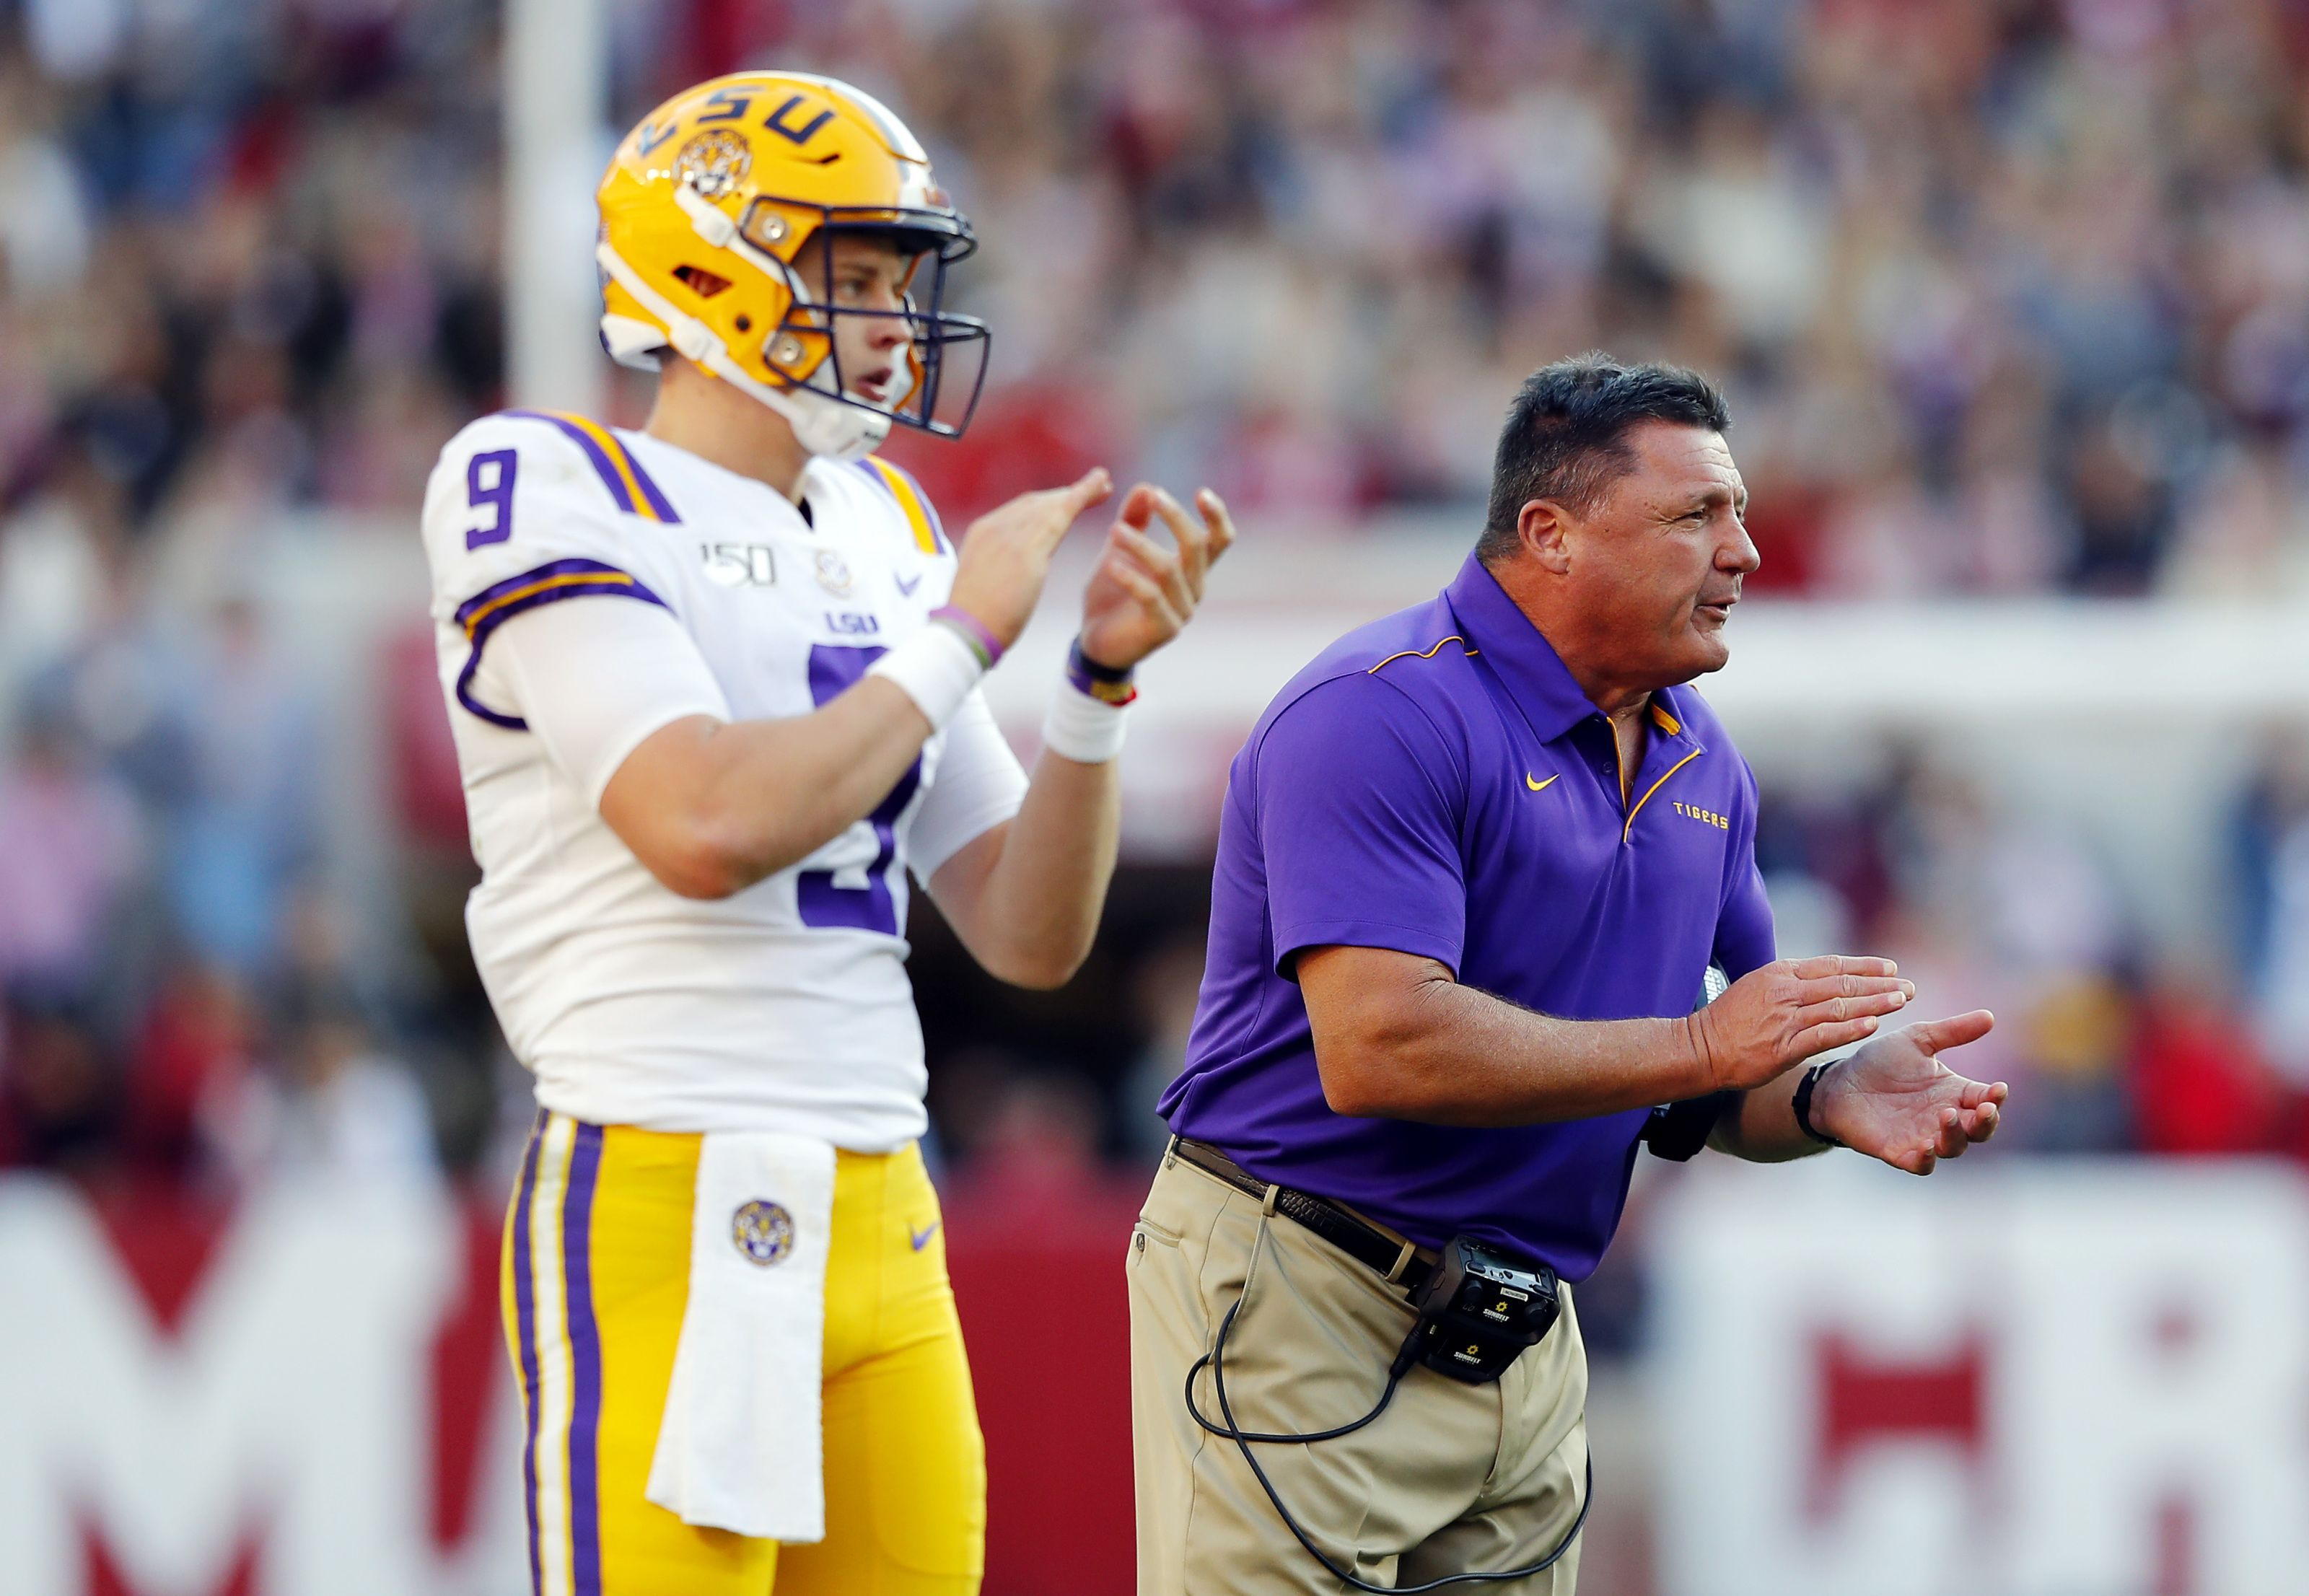 Lsu Football Head Coach Ed Orgeron Wasn T Shy About Praising Tigers Quarterback Joe Burrow The Morning After Winning The In 2020 Lsu Football Lsu Tigers Football Lsu